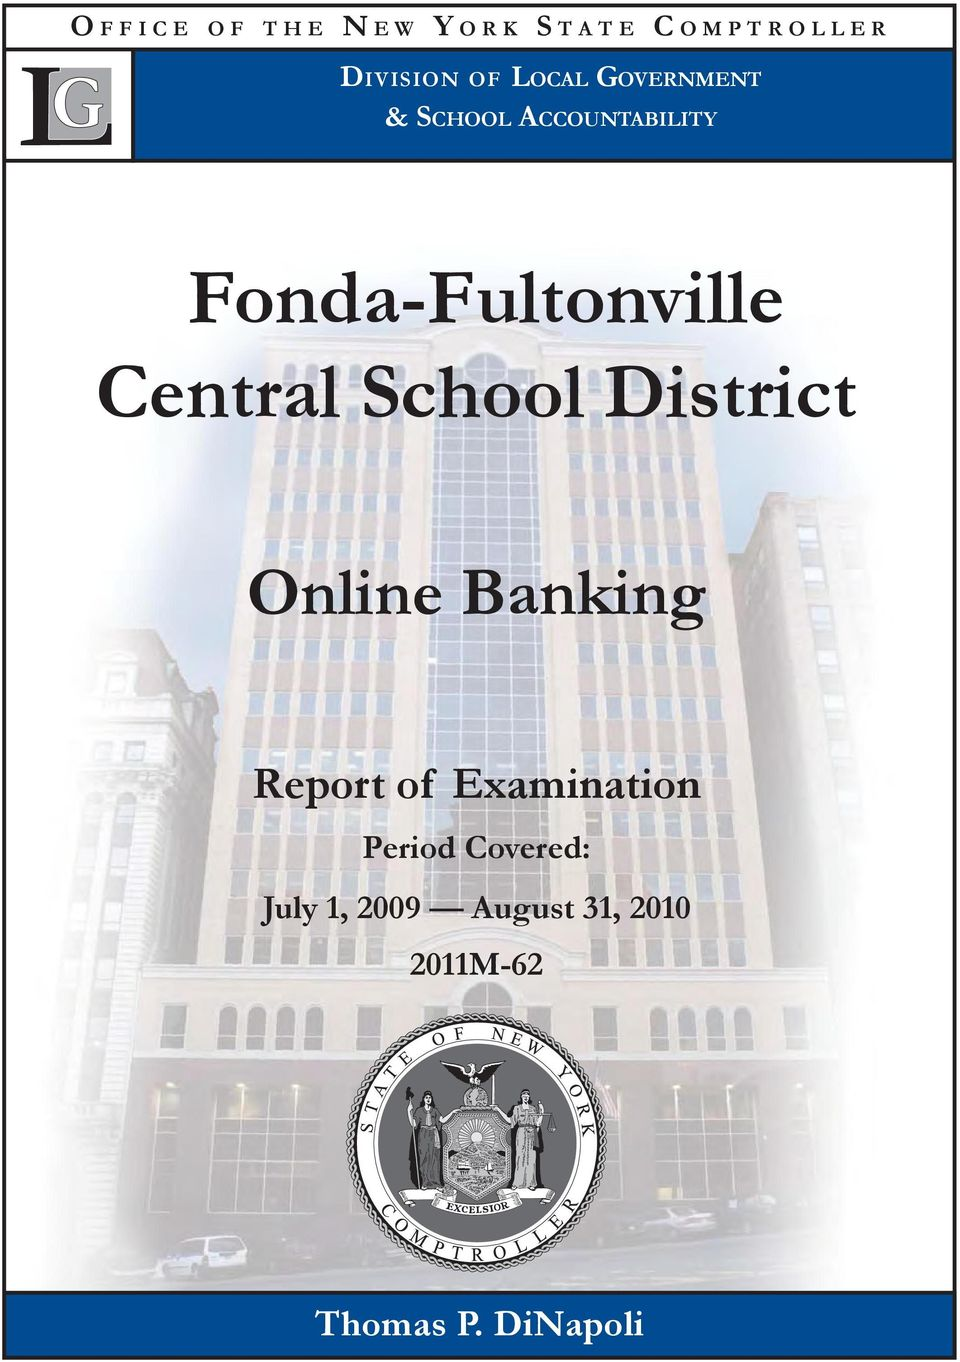 School District Online Banking Report of Examination Period